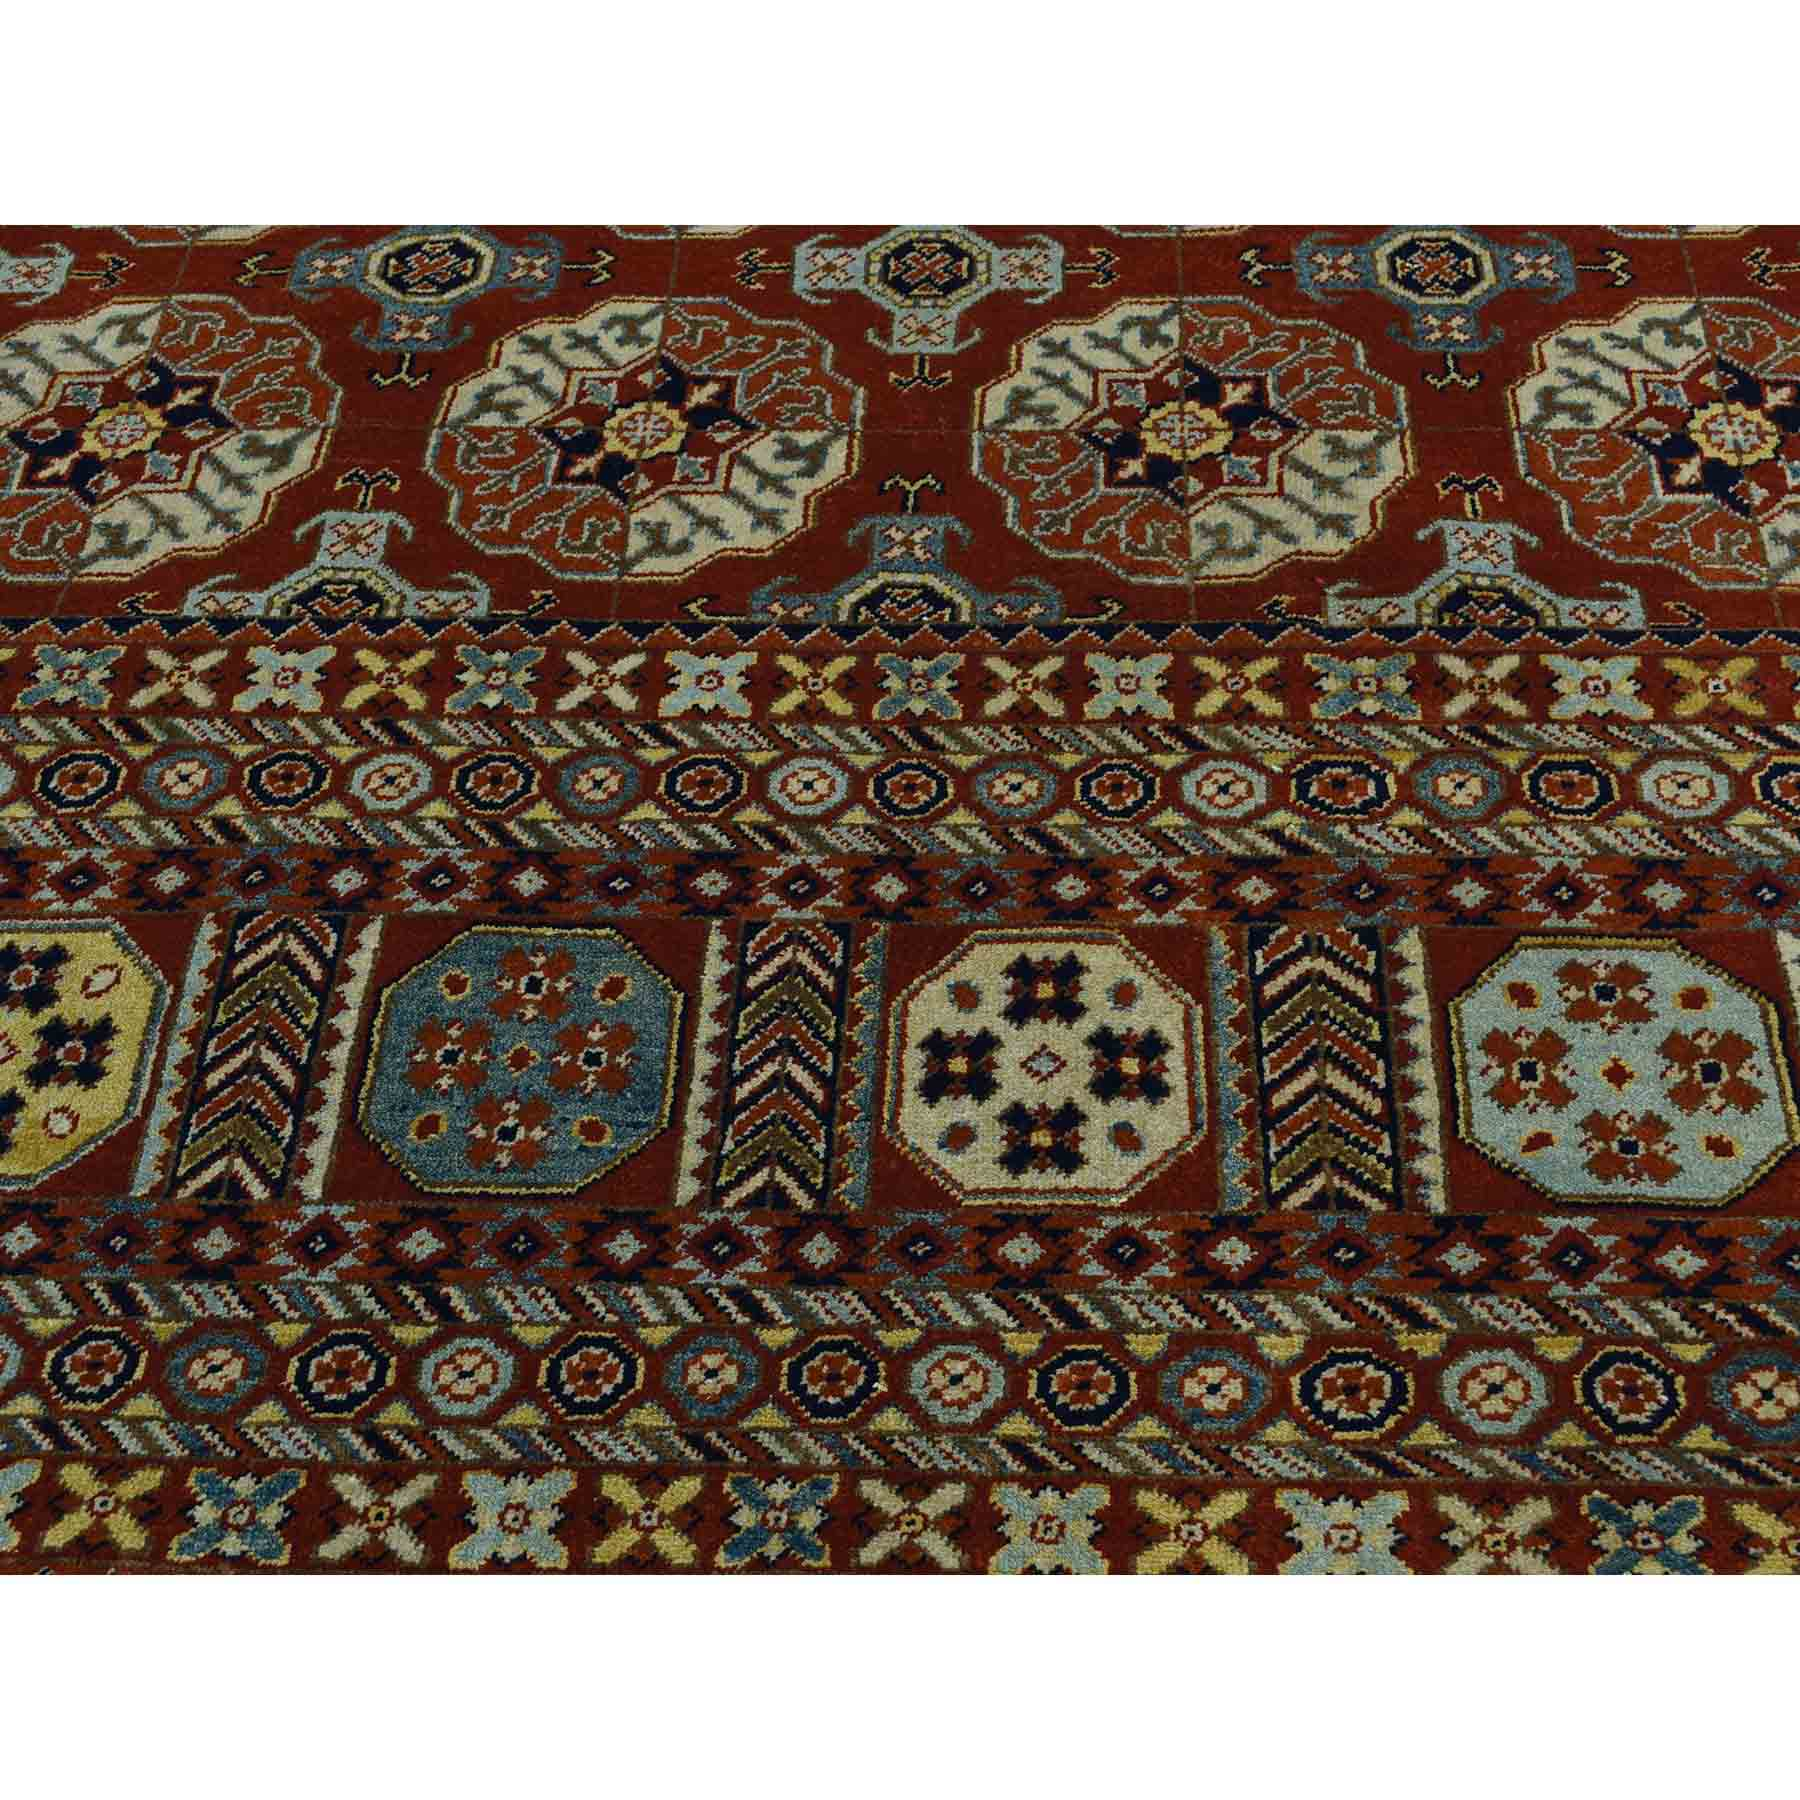 Tribal-Geometric-Hand-Knotted-Rug-171035